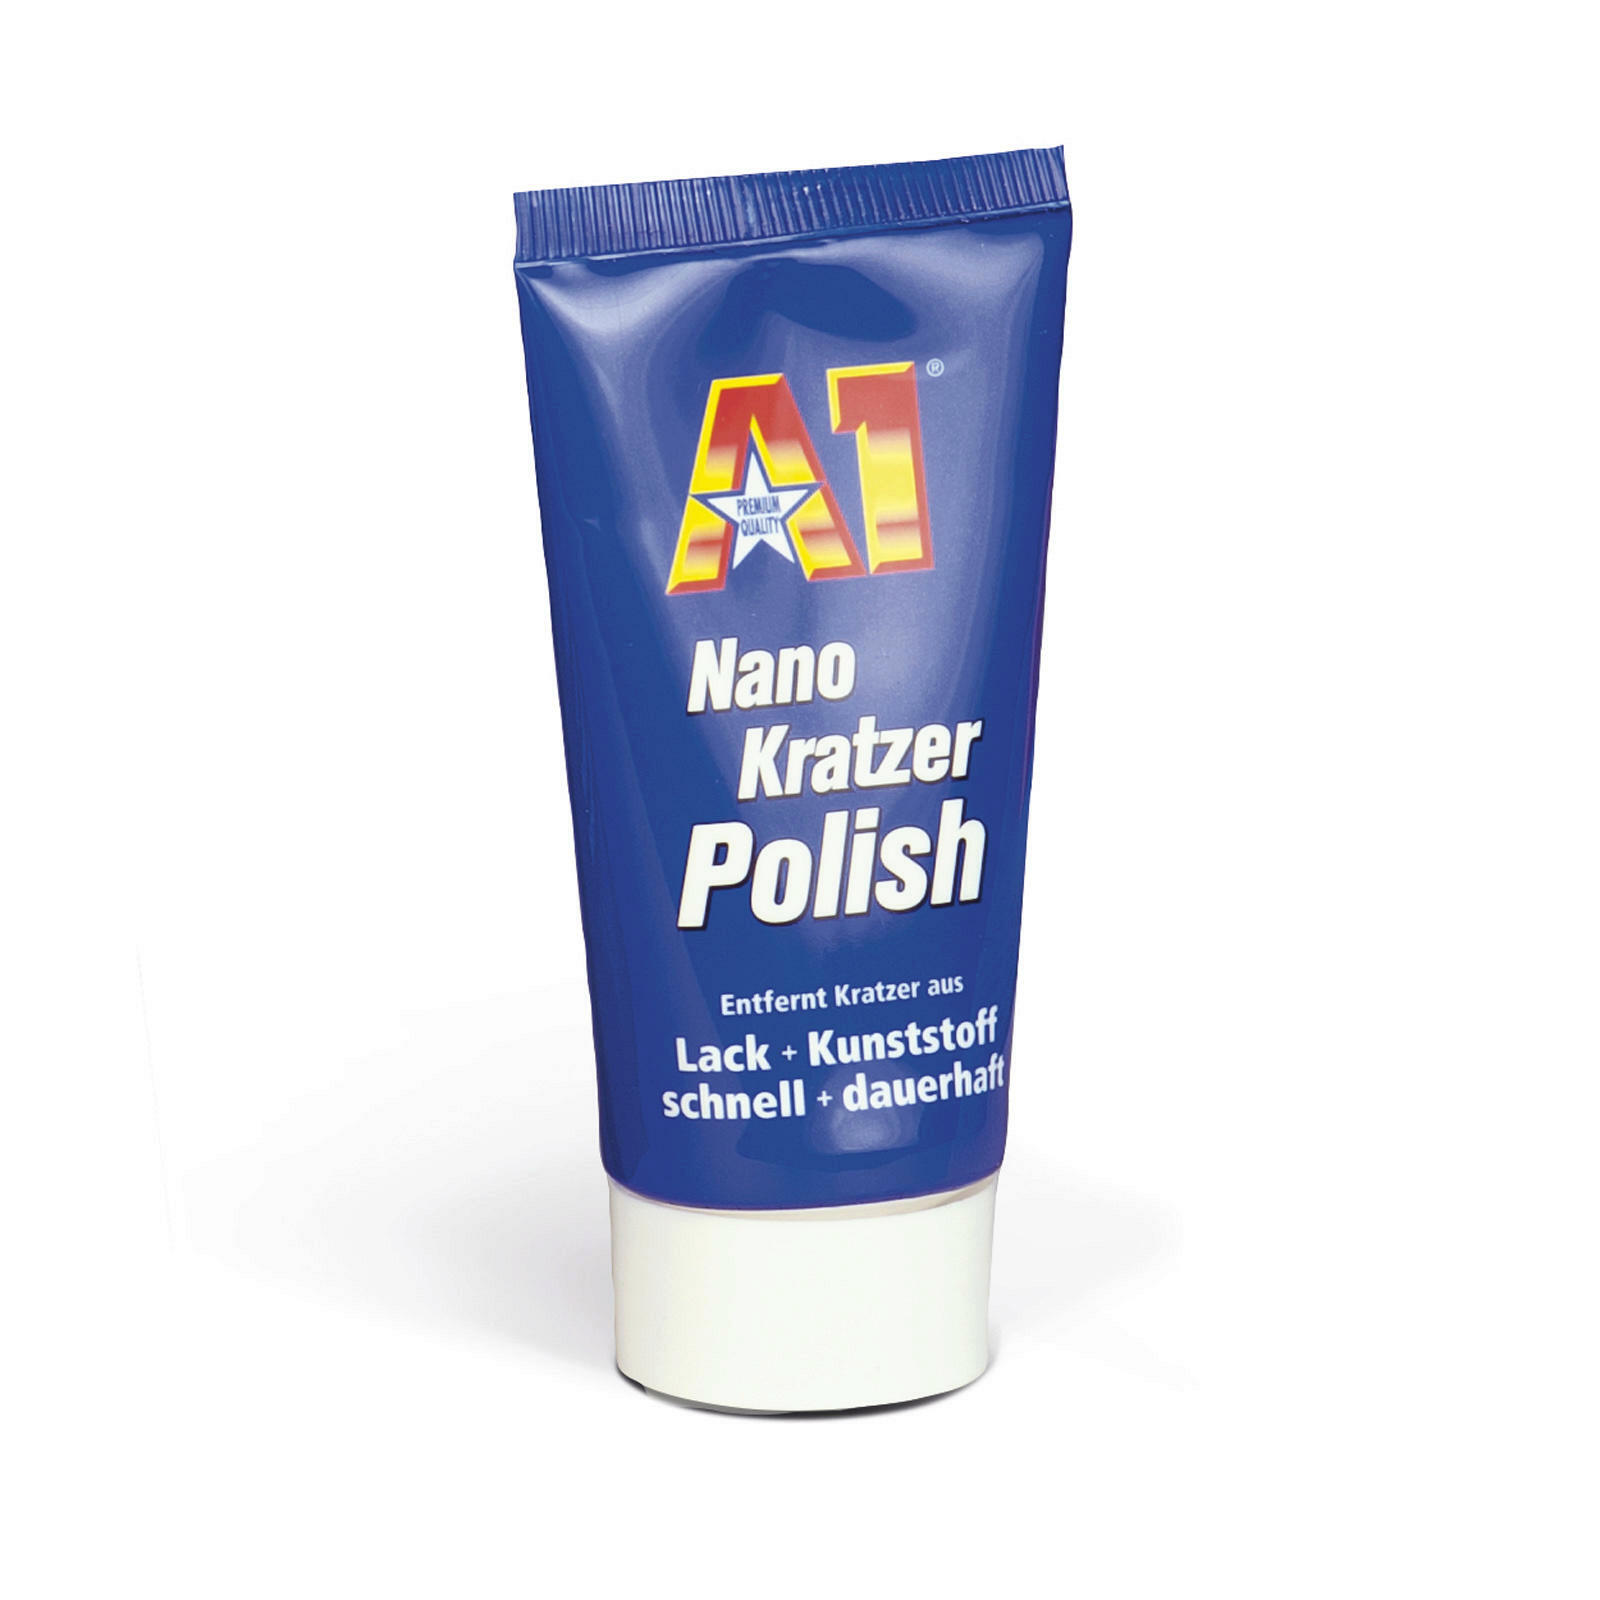 Dr. Wack A1 Nano Kratzer Polish 50 ML Nano-Tech-Politur brillante Oberfläche